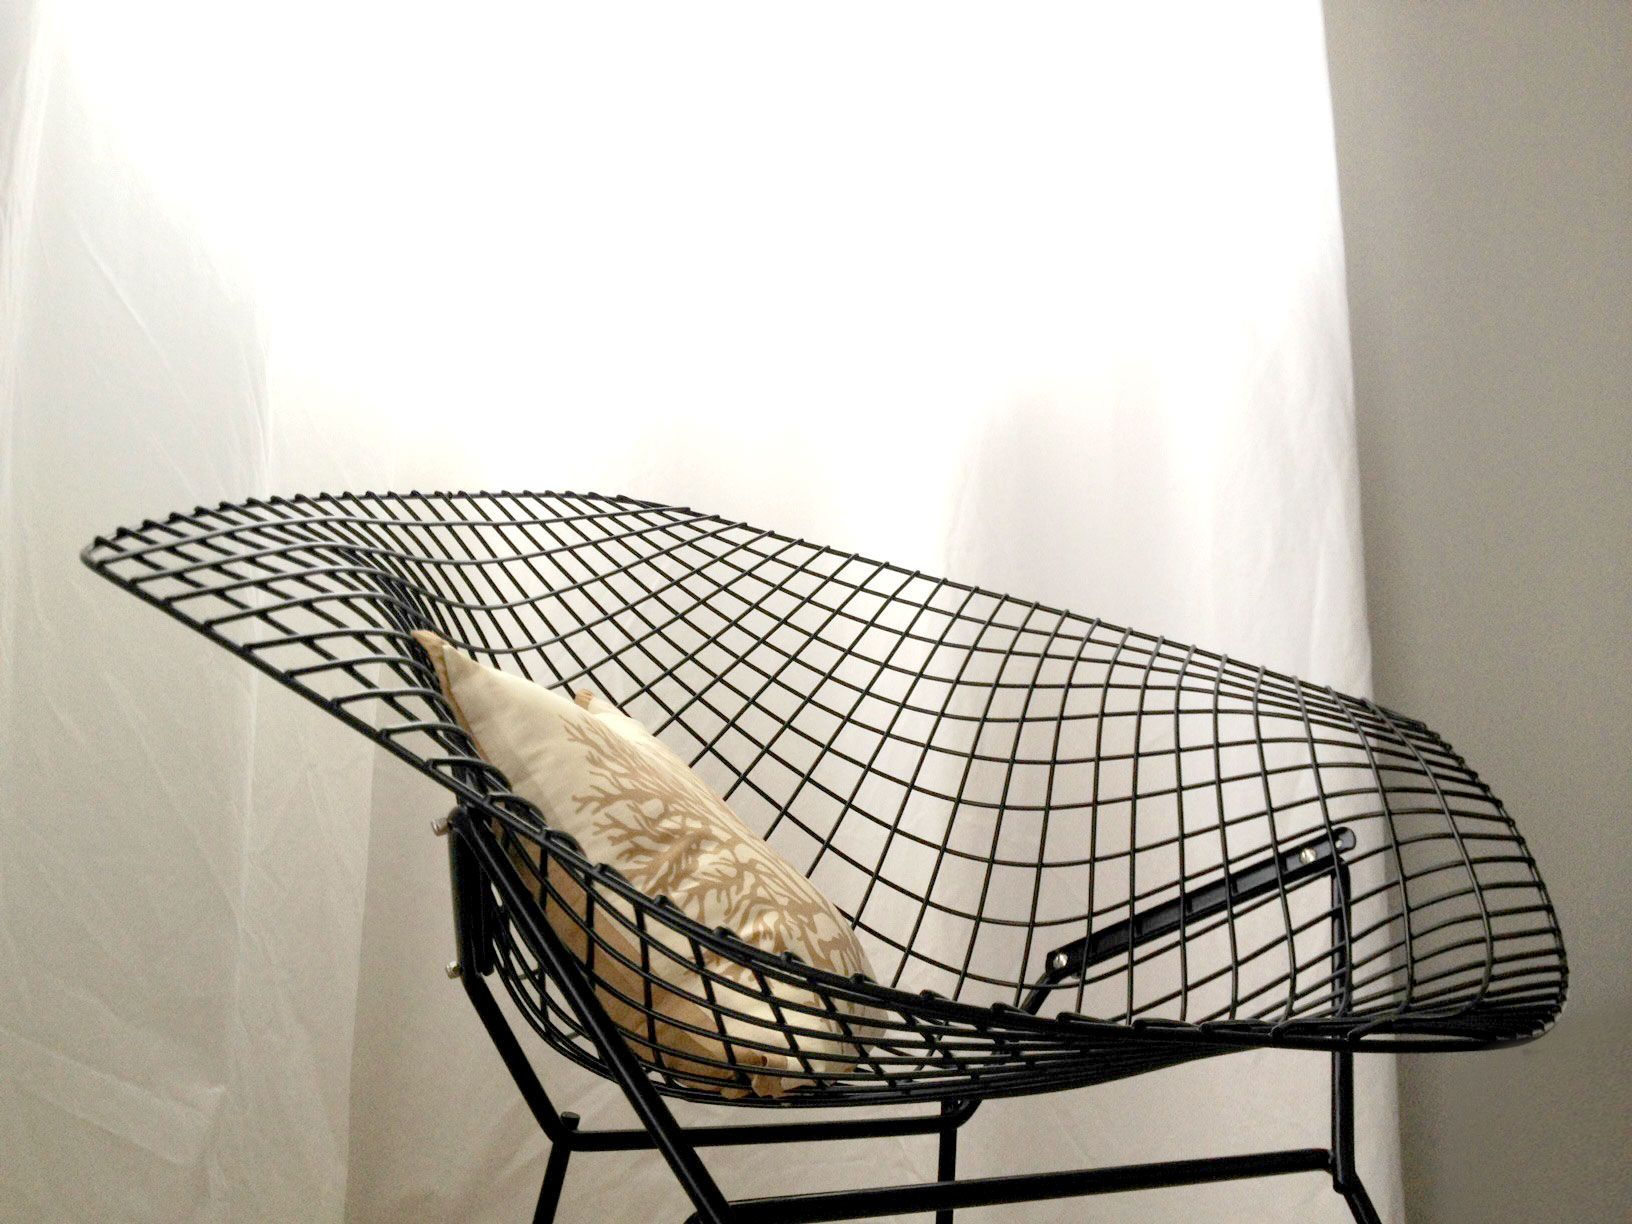 Bertoia diamond chair black - Our New Chair Vintage Bertoia Diamond Chair Black